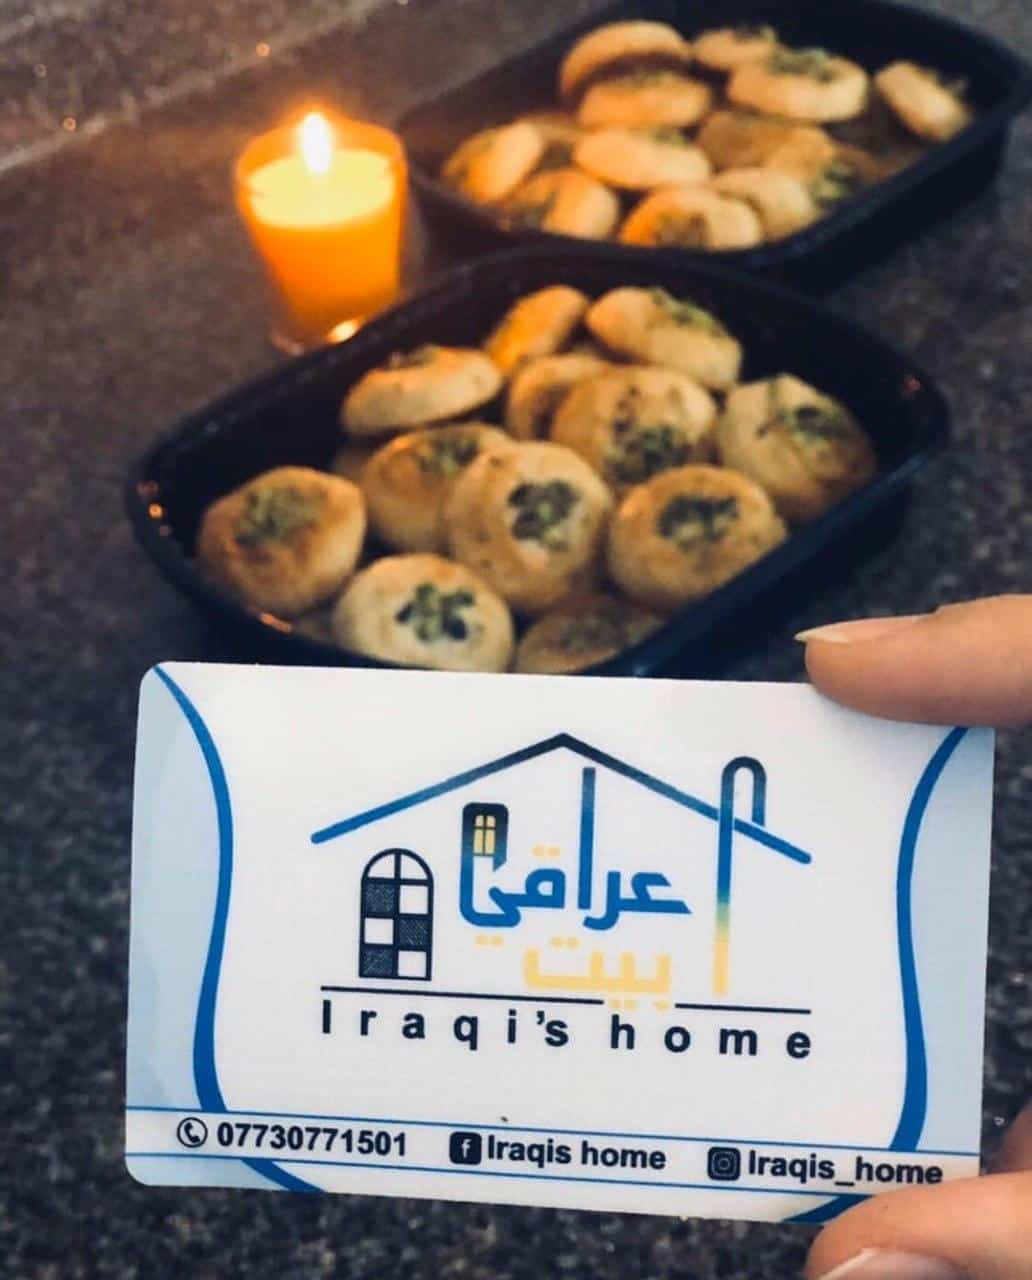 Iraqis Home businesses in Karbala cookies 1